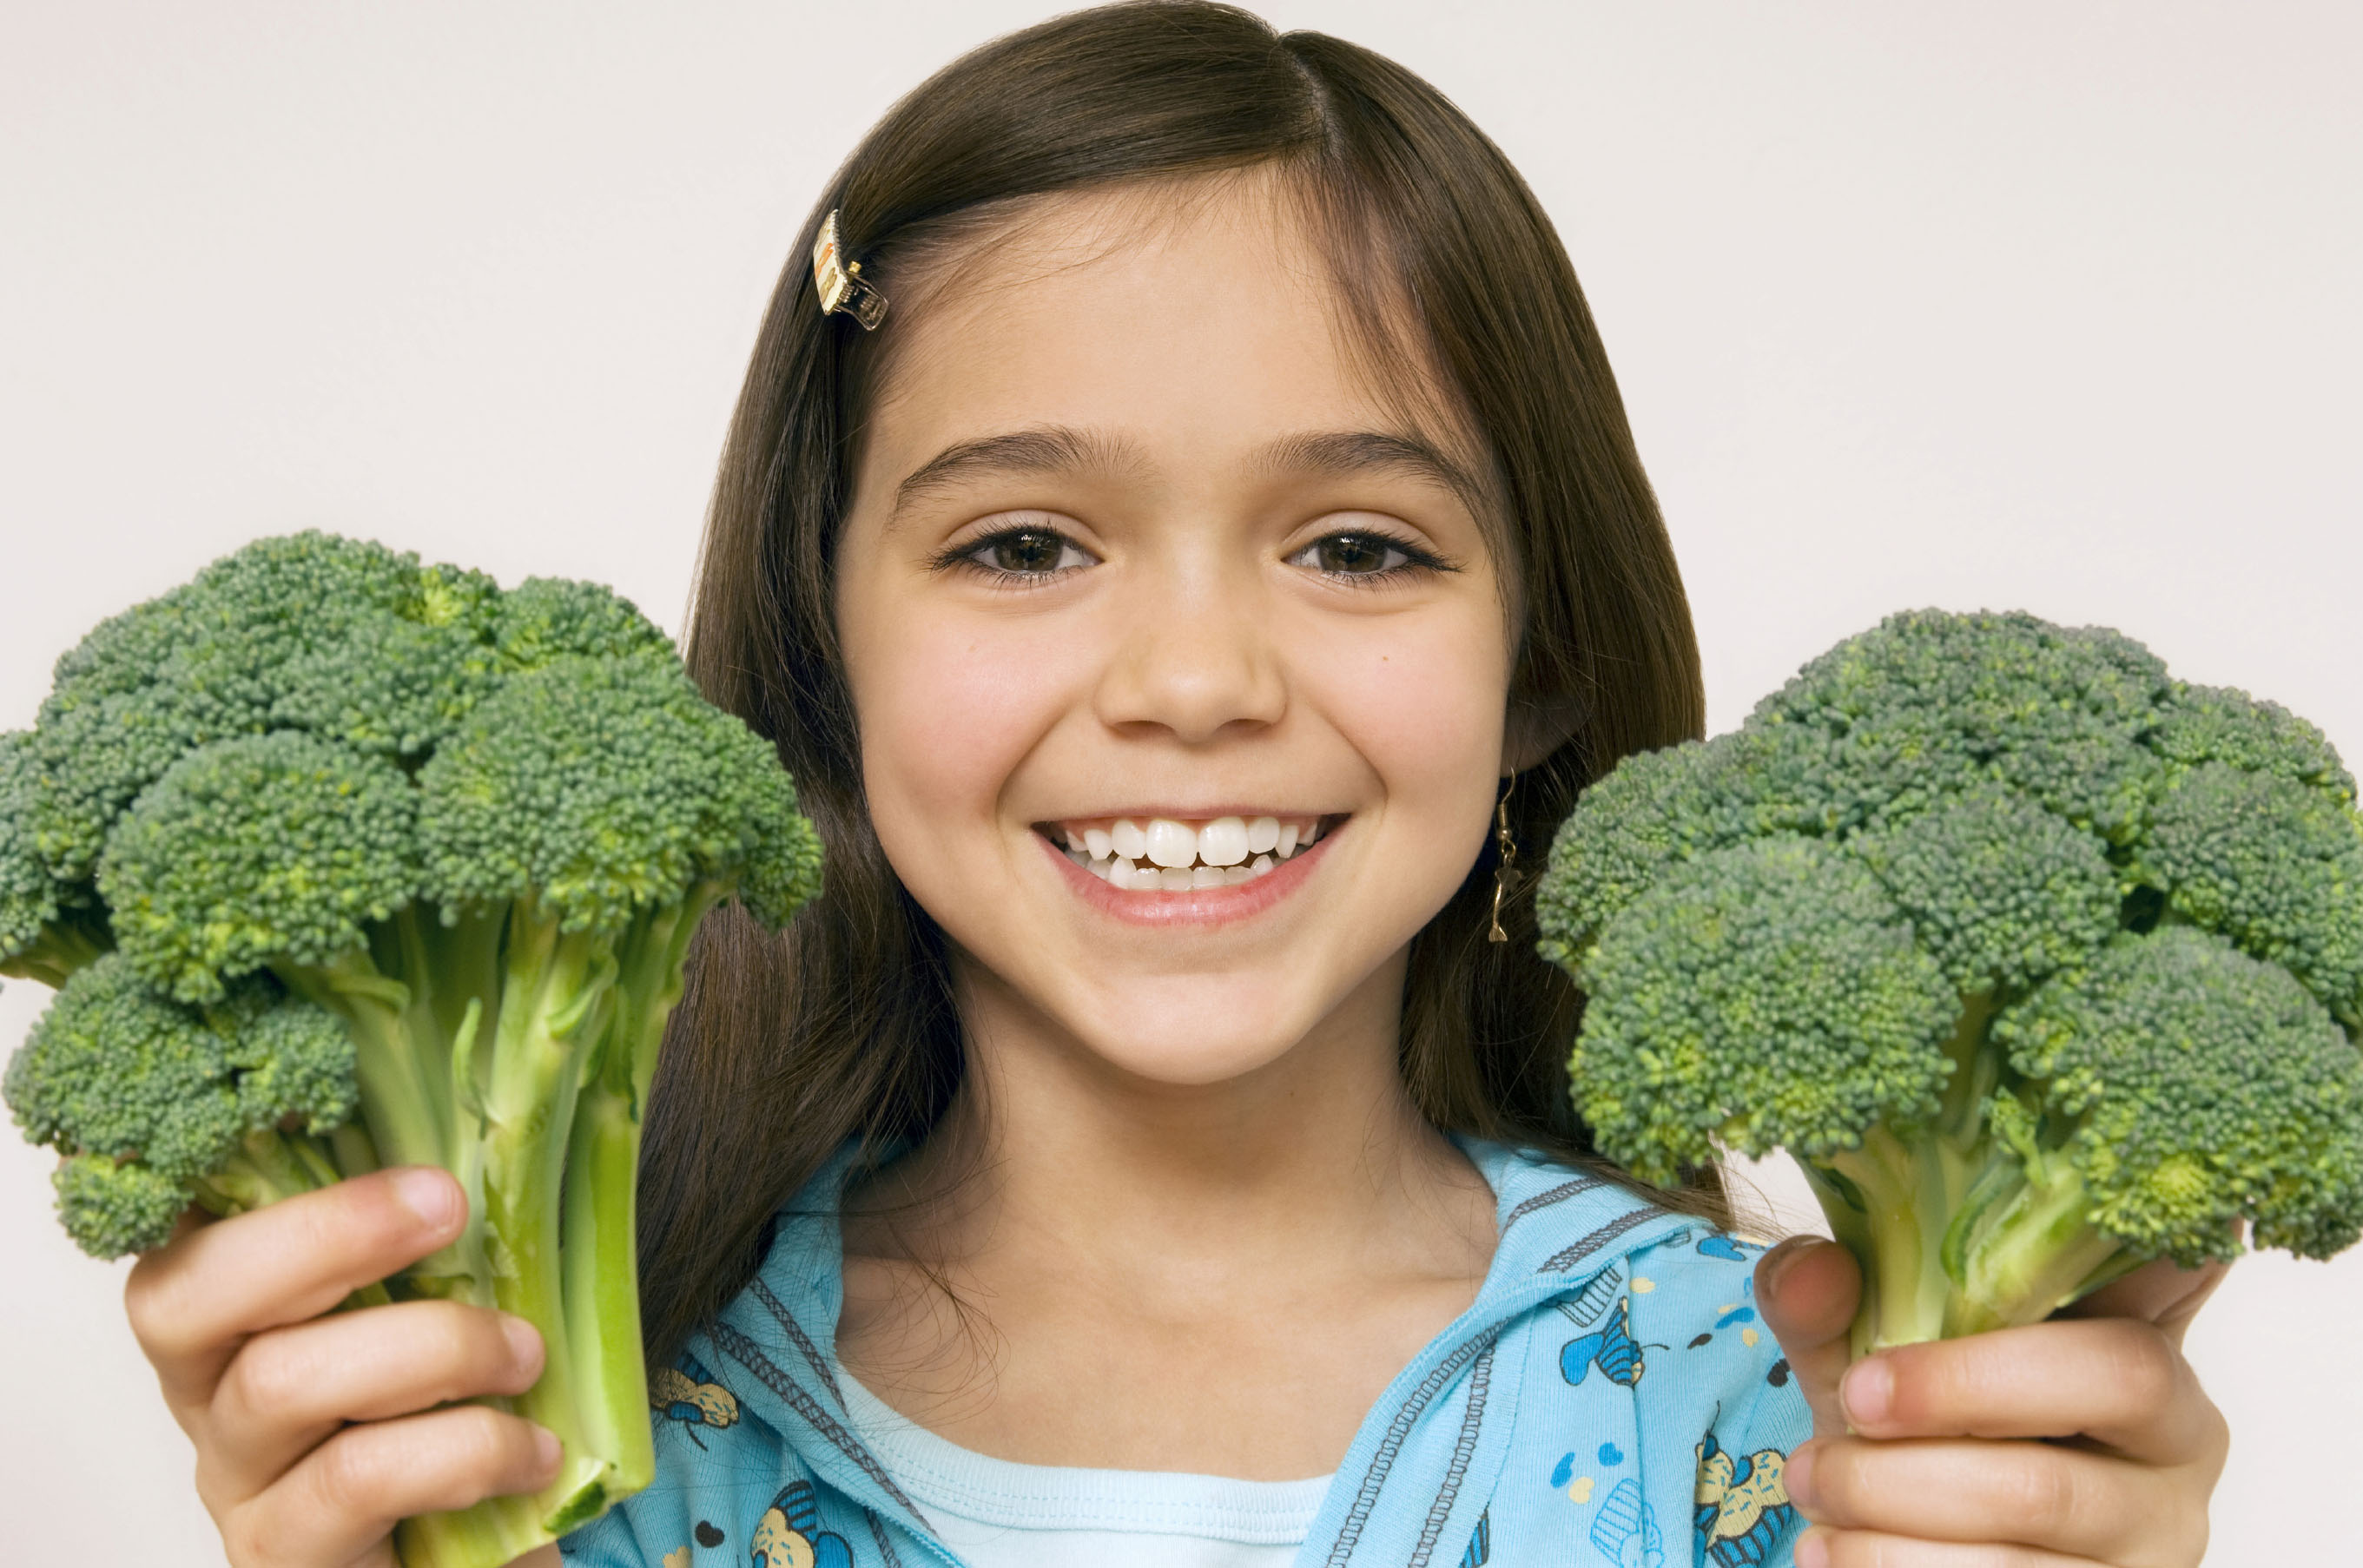 kid-broccoli